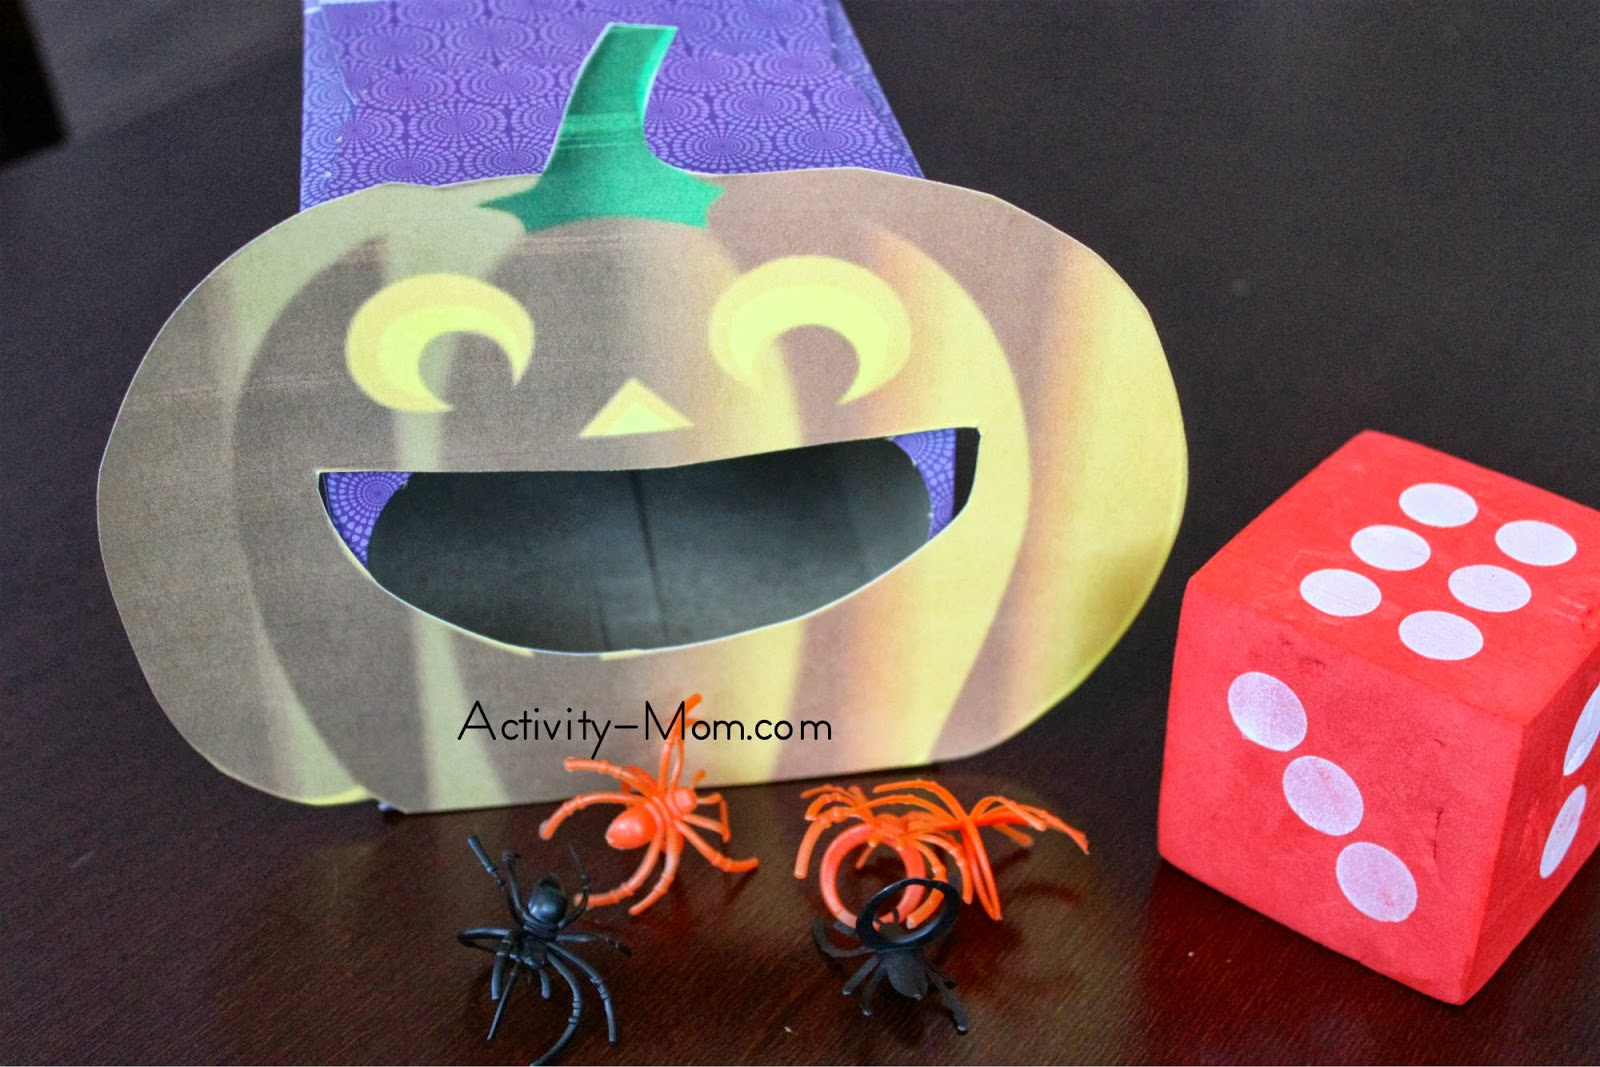 The Activity Mom Pumpkin Game Printable